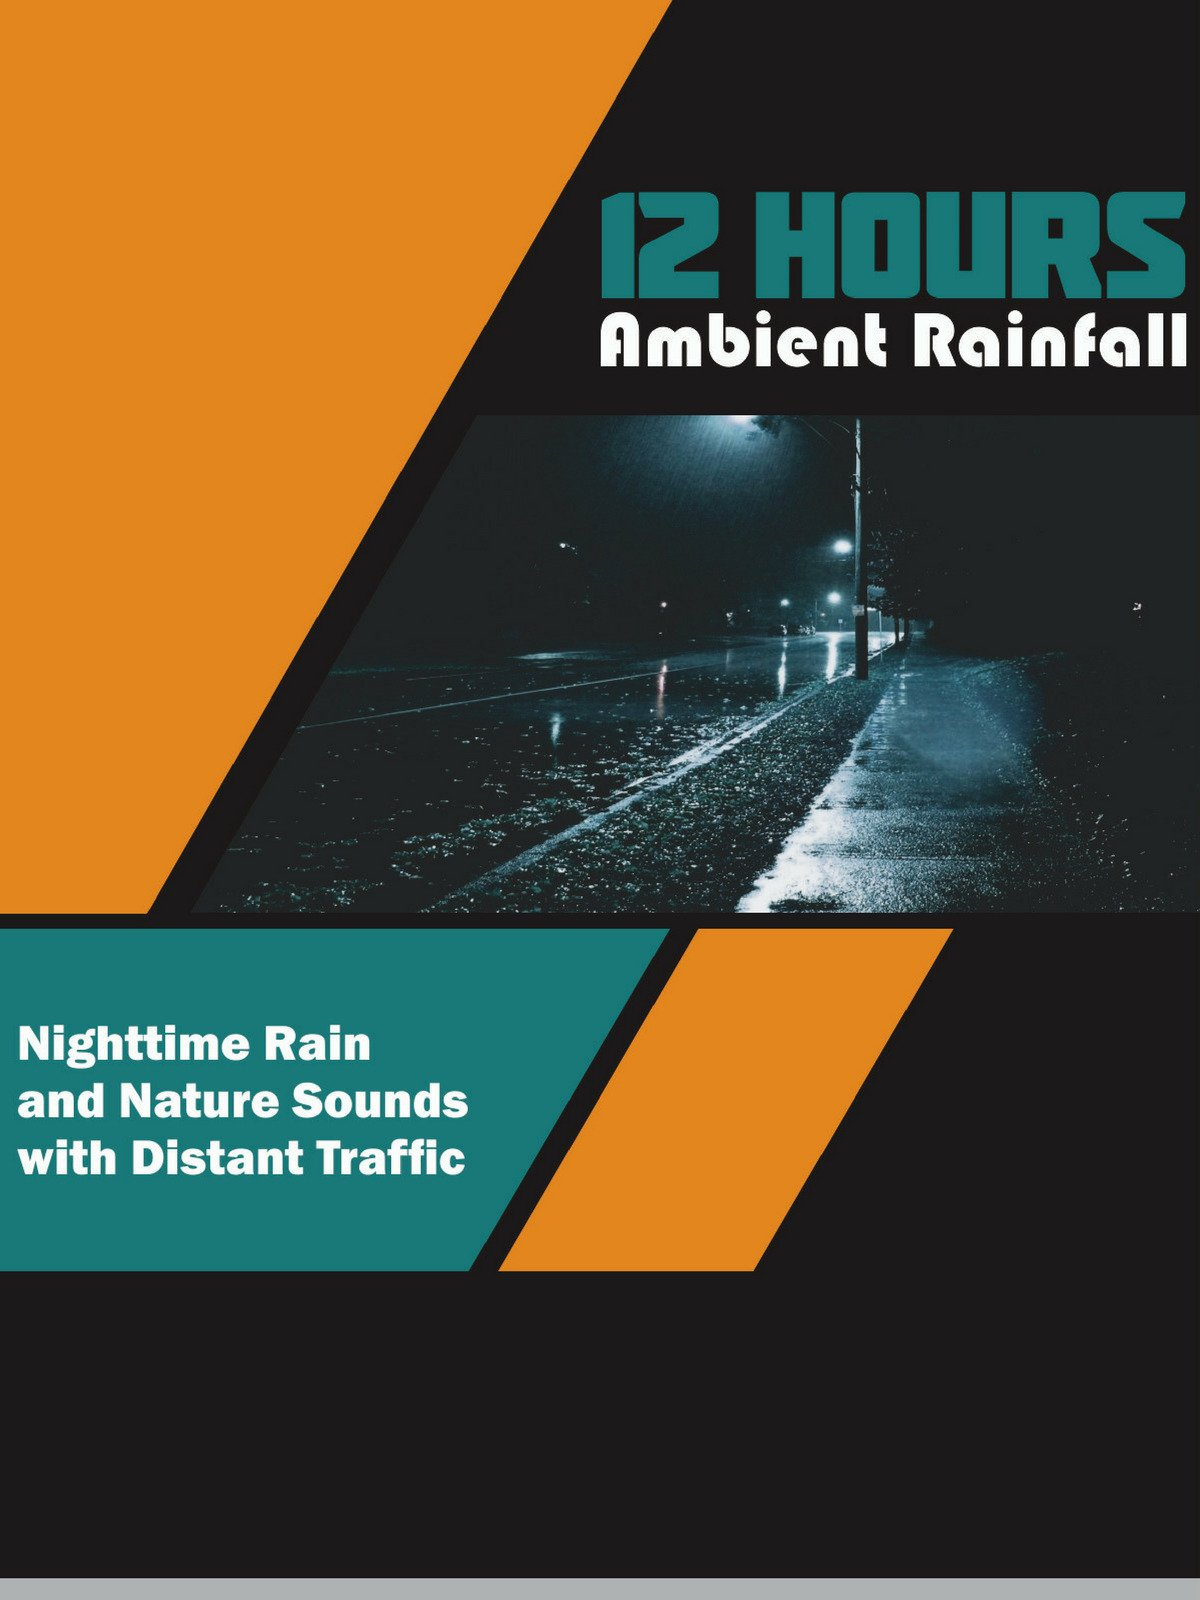 12 Hours Ambient Rainfall Nighttime Rain and Nature Sounds with Distant Traffic